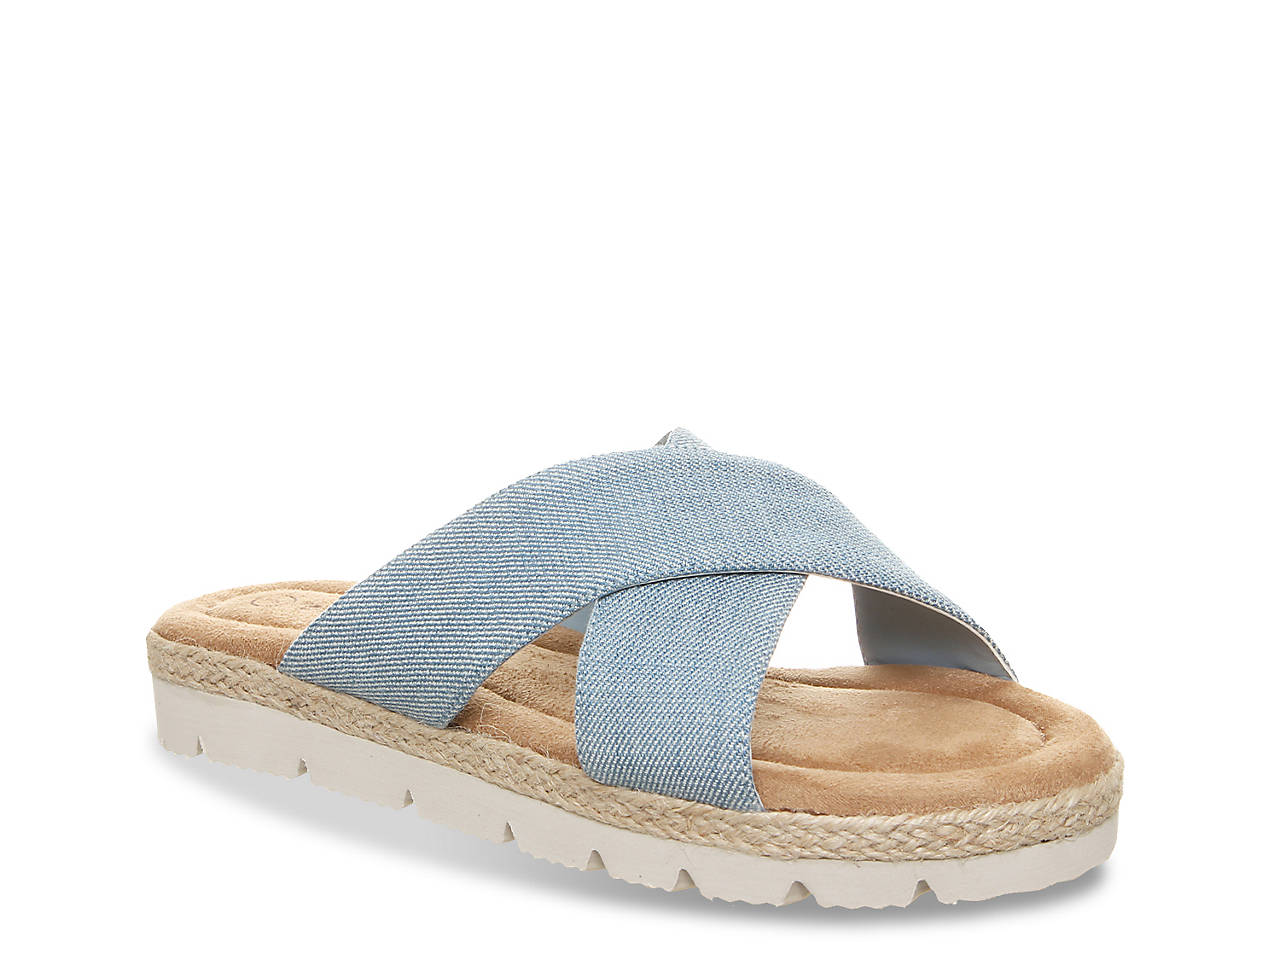 Elelyn Sandal by Bearpaw